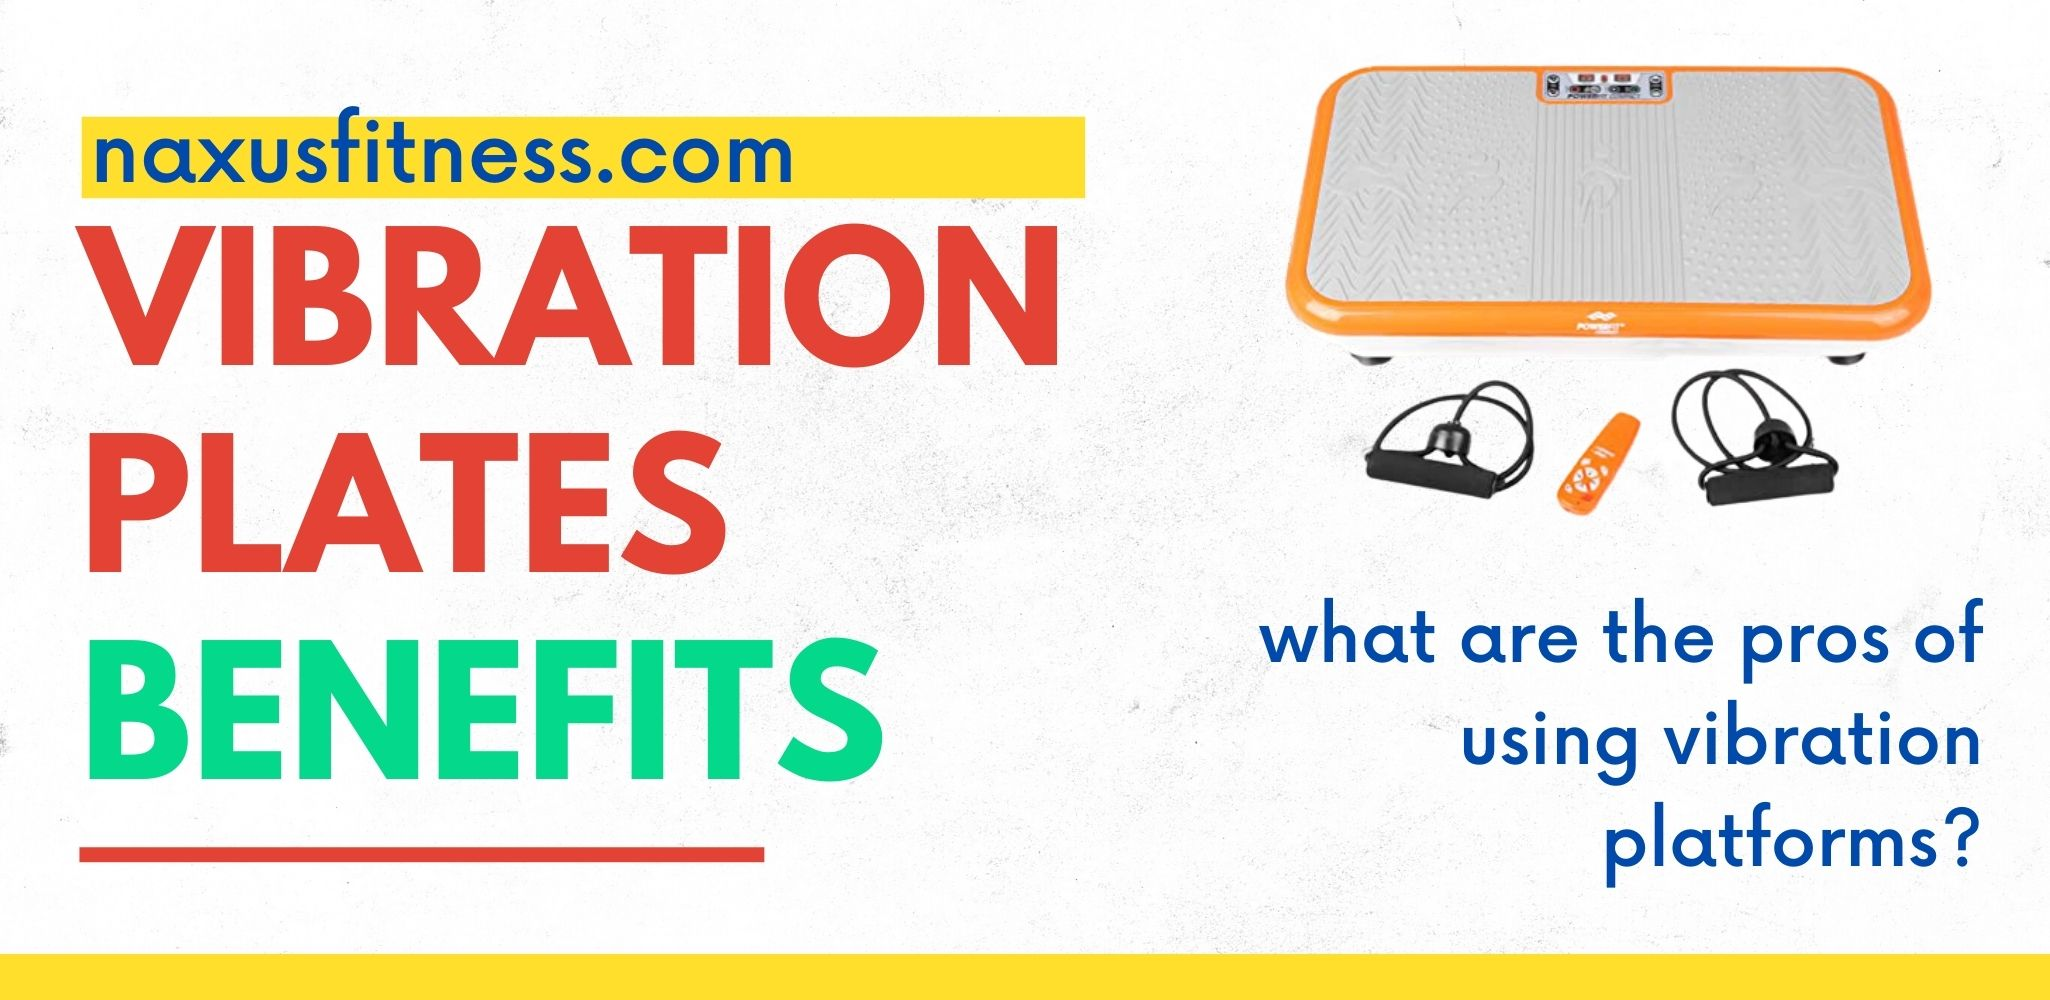 Benefits of using vibration plates